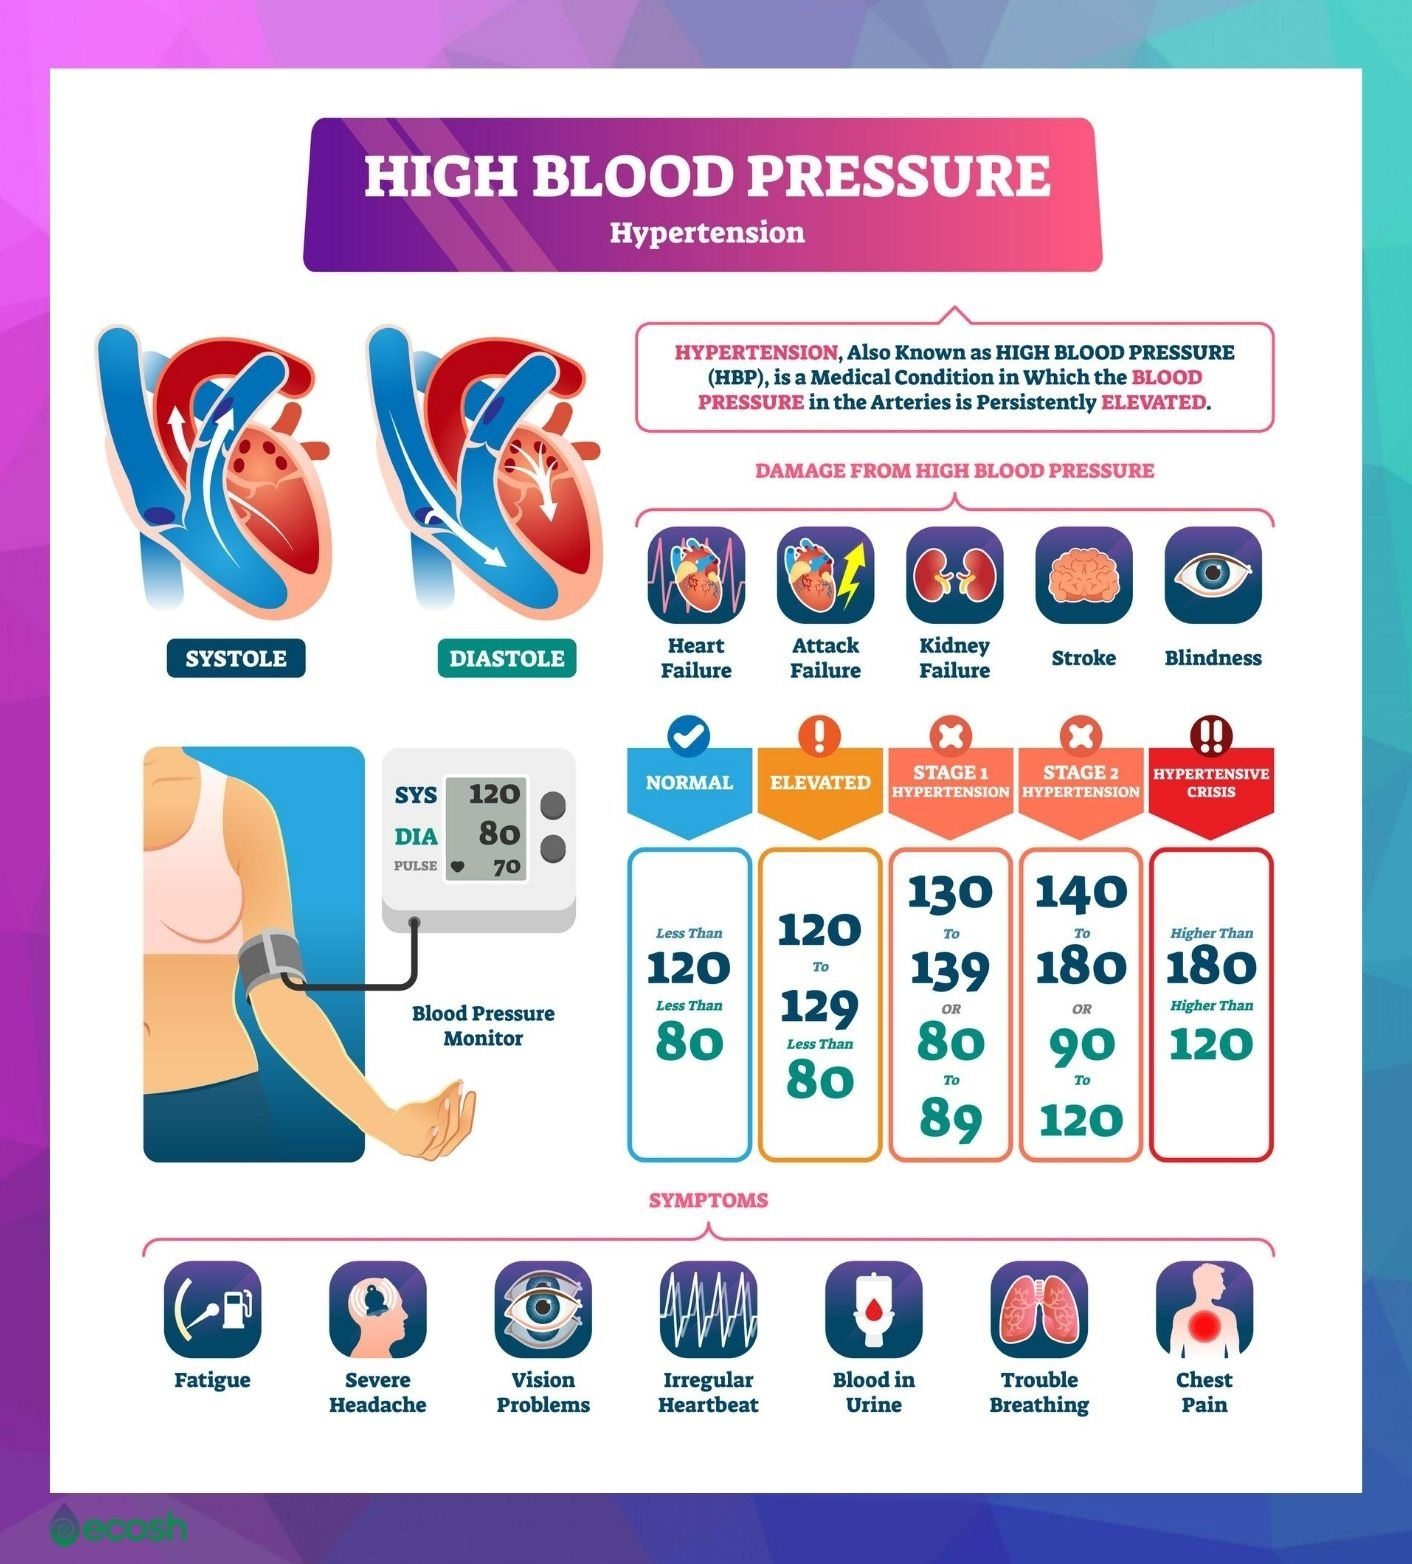 Hypertension_Symptoms_Hypertension_Diet_High_Blood_Pressure_Diet_How_to_Lower_Your_Blood_Pressure_Supplements_For_High_Blood_Pressure_Hypertension_Natural_Treatment